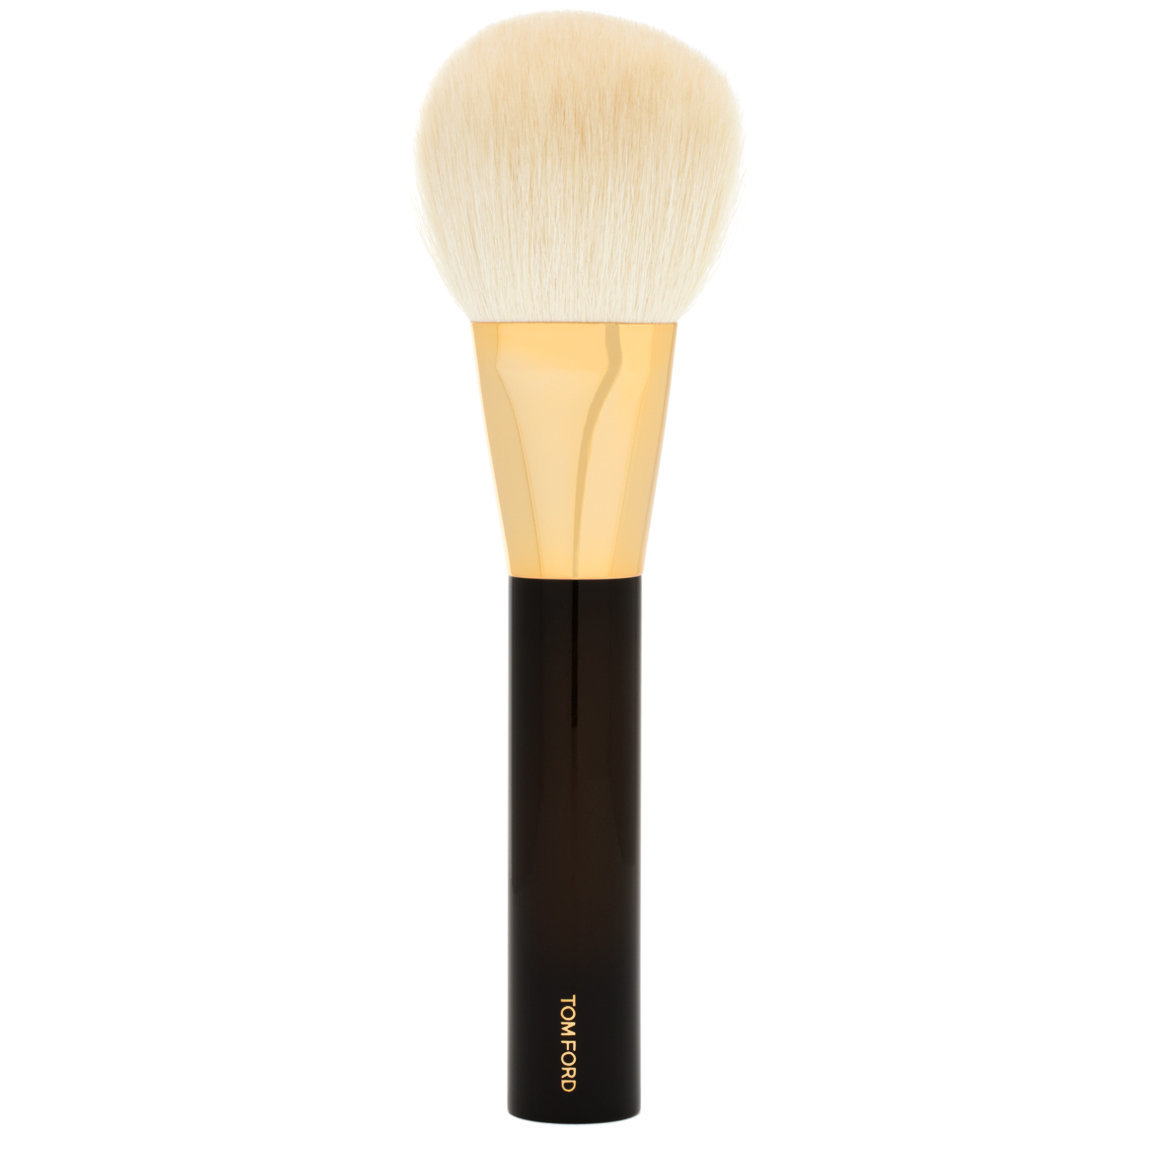 tom ford bronzer brush 05 beautylish. Black Bedroom Furniture Sets. Home Design Ideas